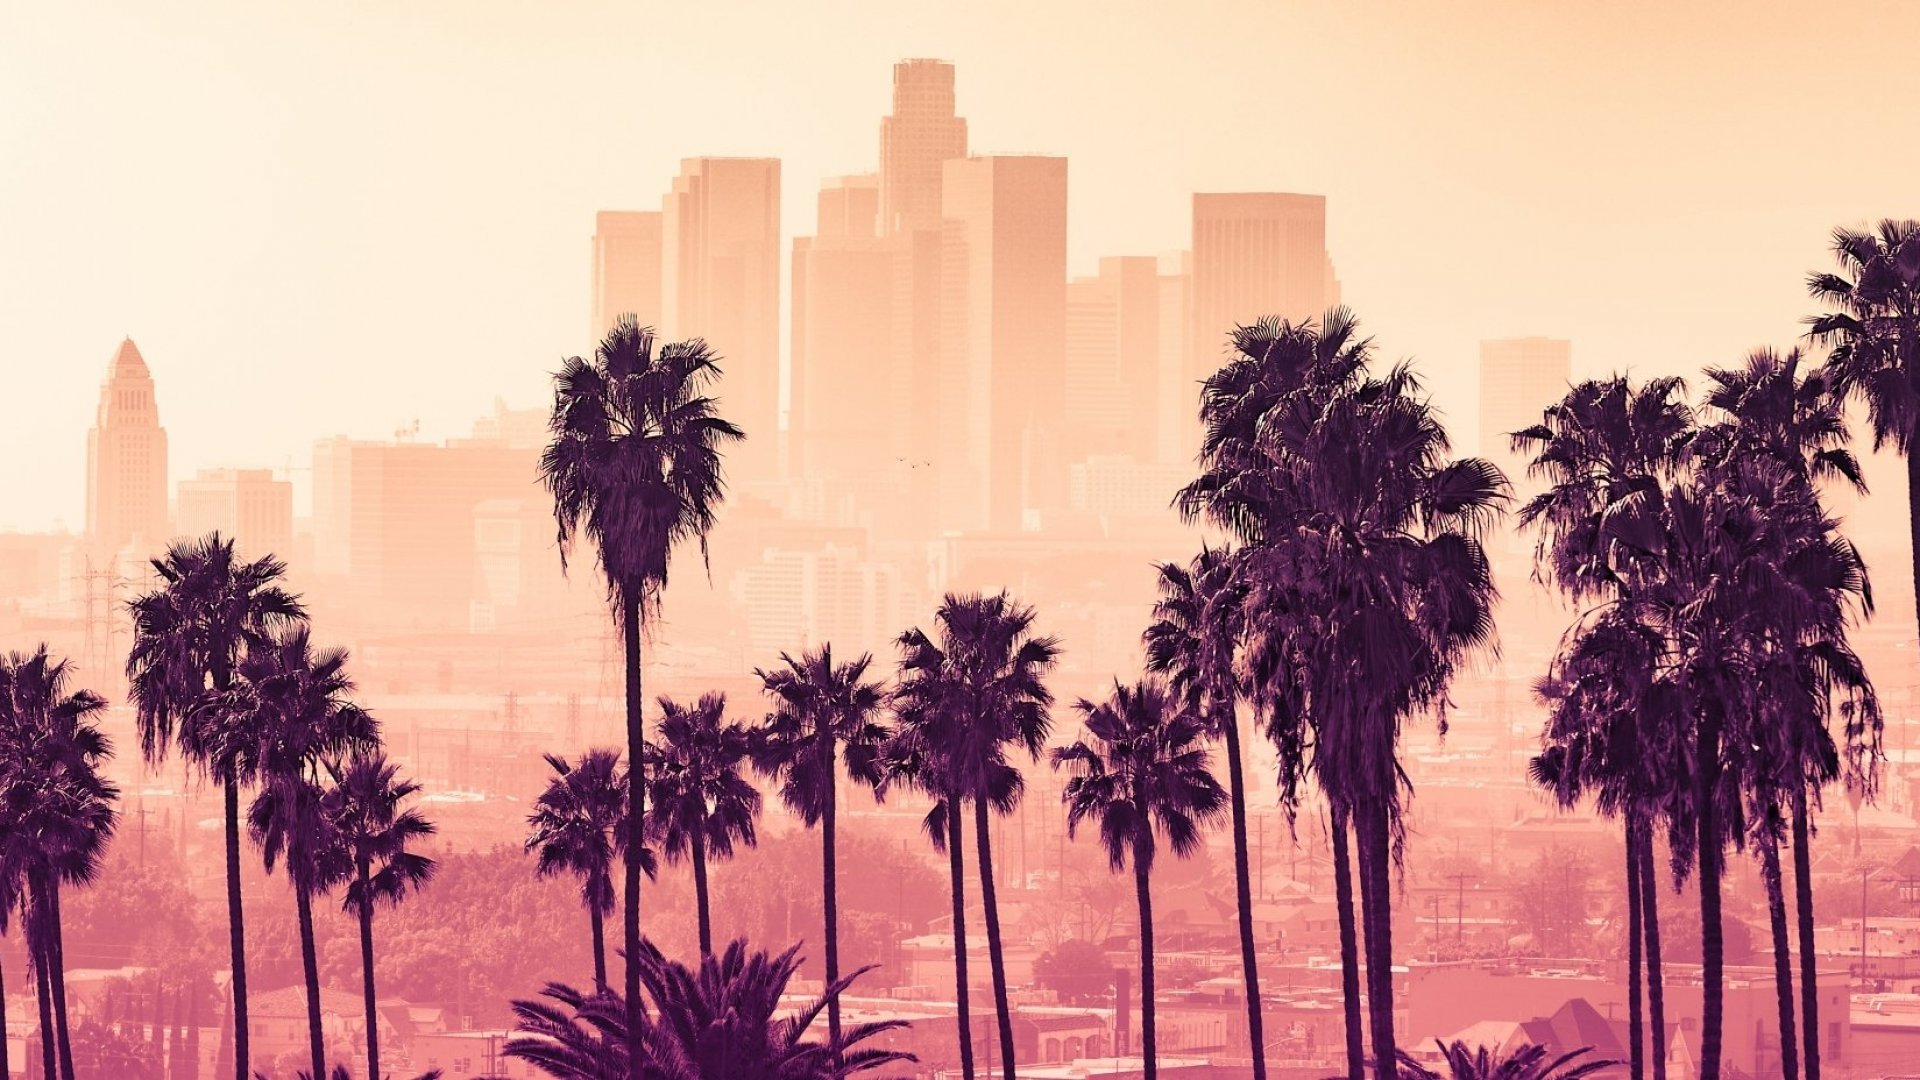 3 Reasons Why Los Angeles Could Become the Nation's Next Tech Hub